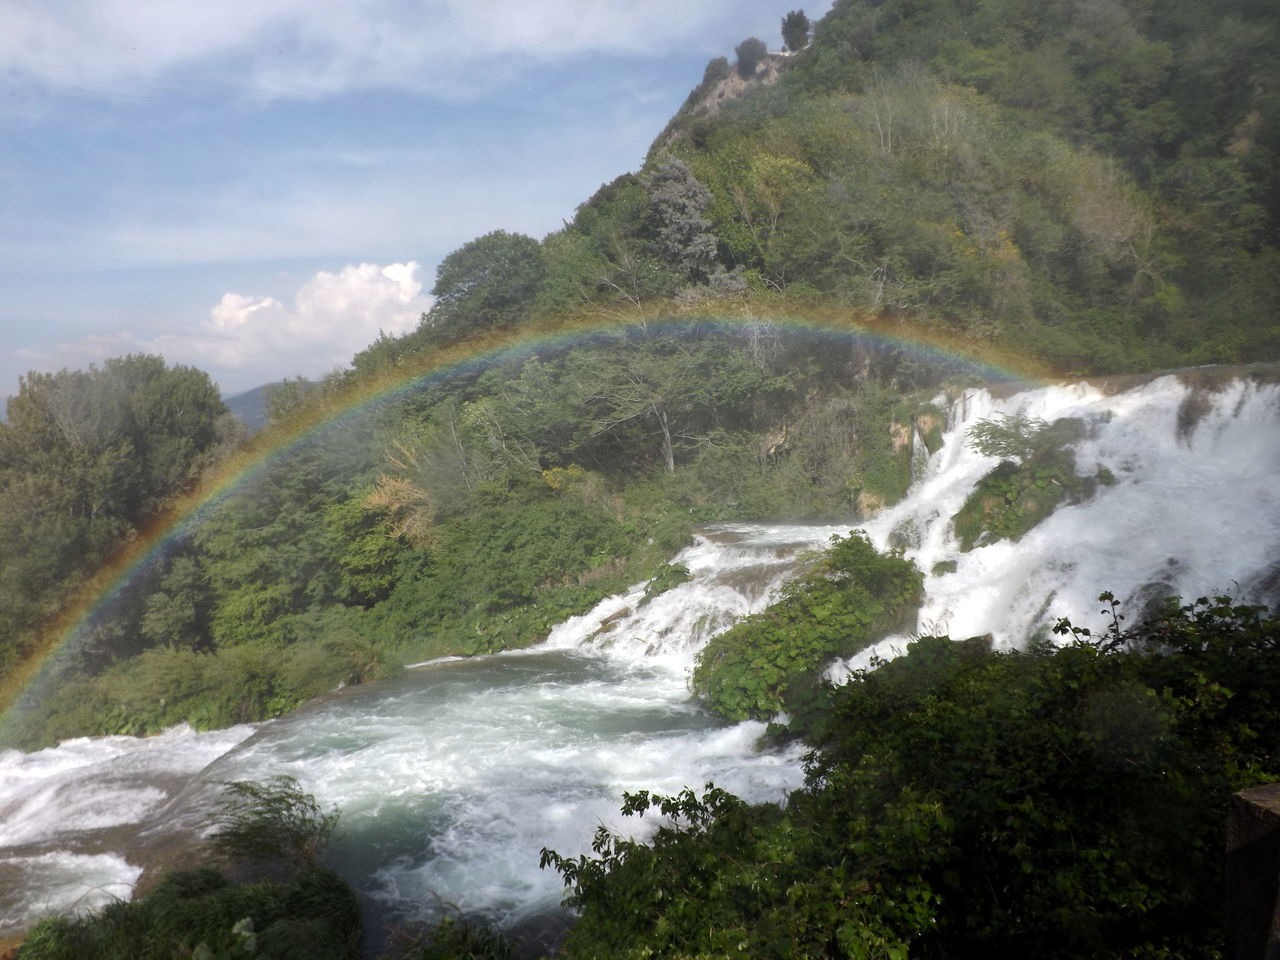 Arcobaleno  Beauty In Nature Clouds Forest Italia Italy Landscape Marmore Motion Mountain Nature No People Outdoors Power In Nature Rainbow River Scenics Tranquil Scene Tree Umbria Water Waterfall